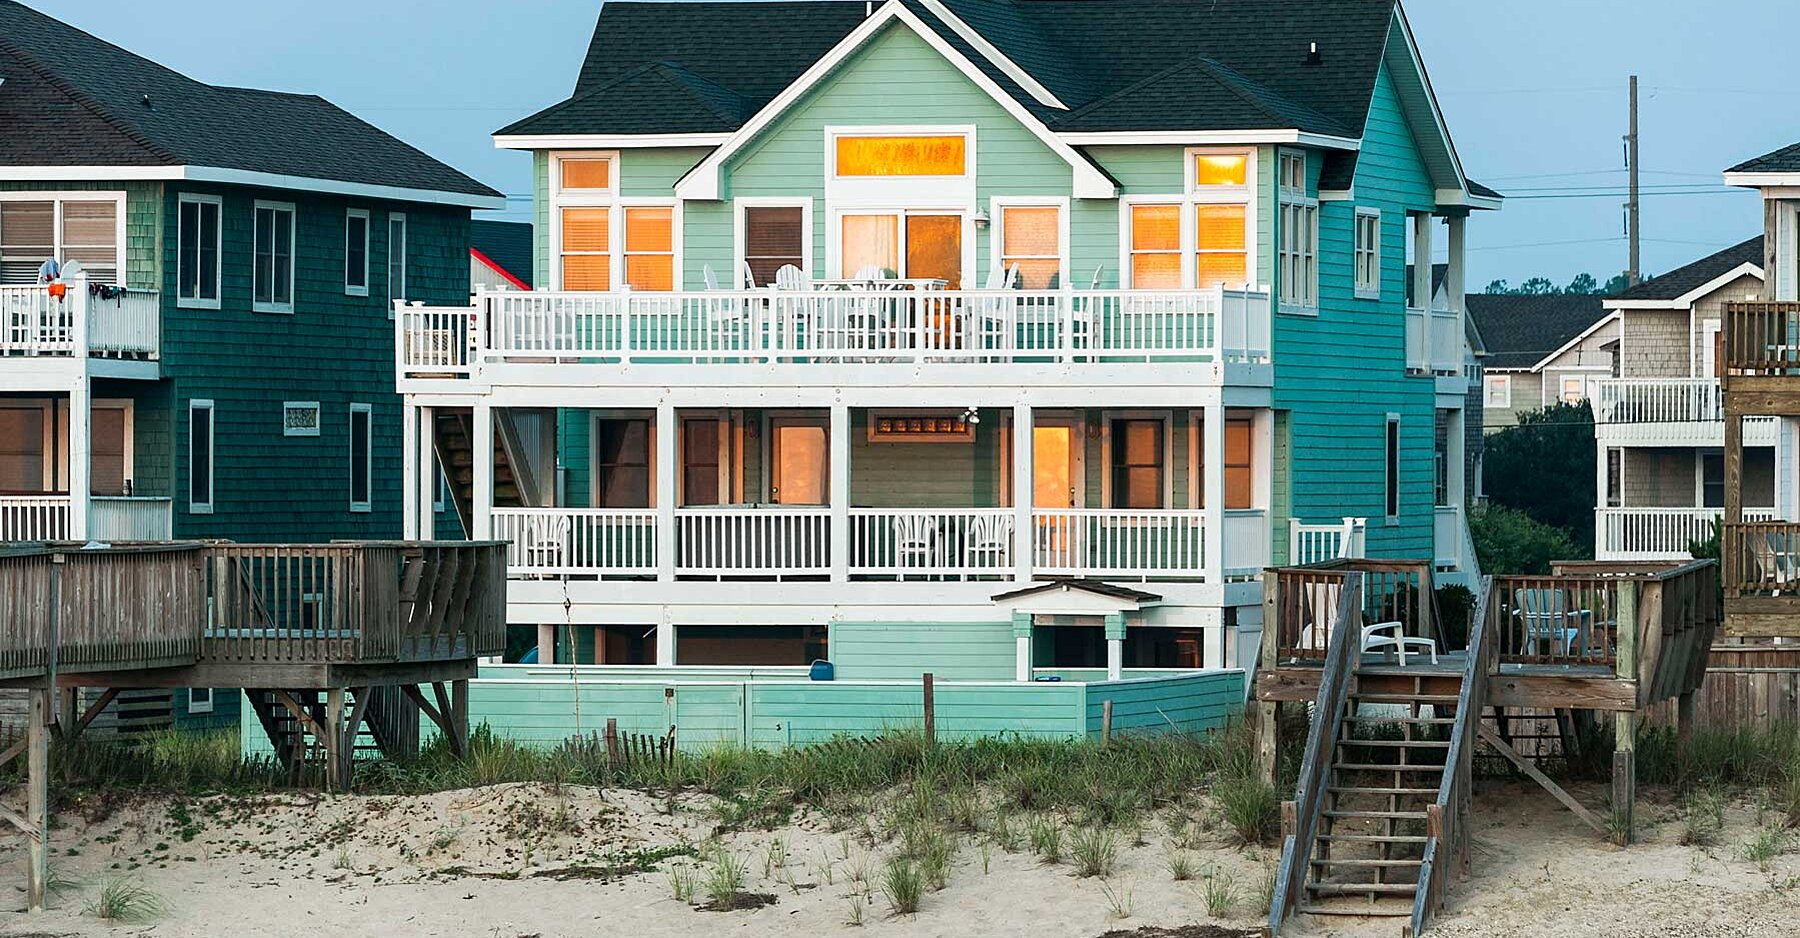 12 Mistakes to Avoid When Renting a Vacation Home, According to Experts